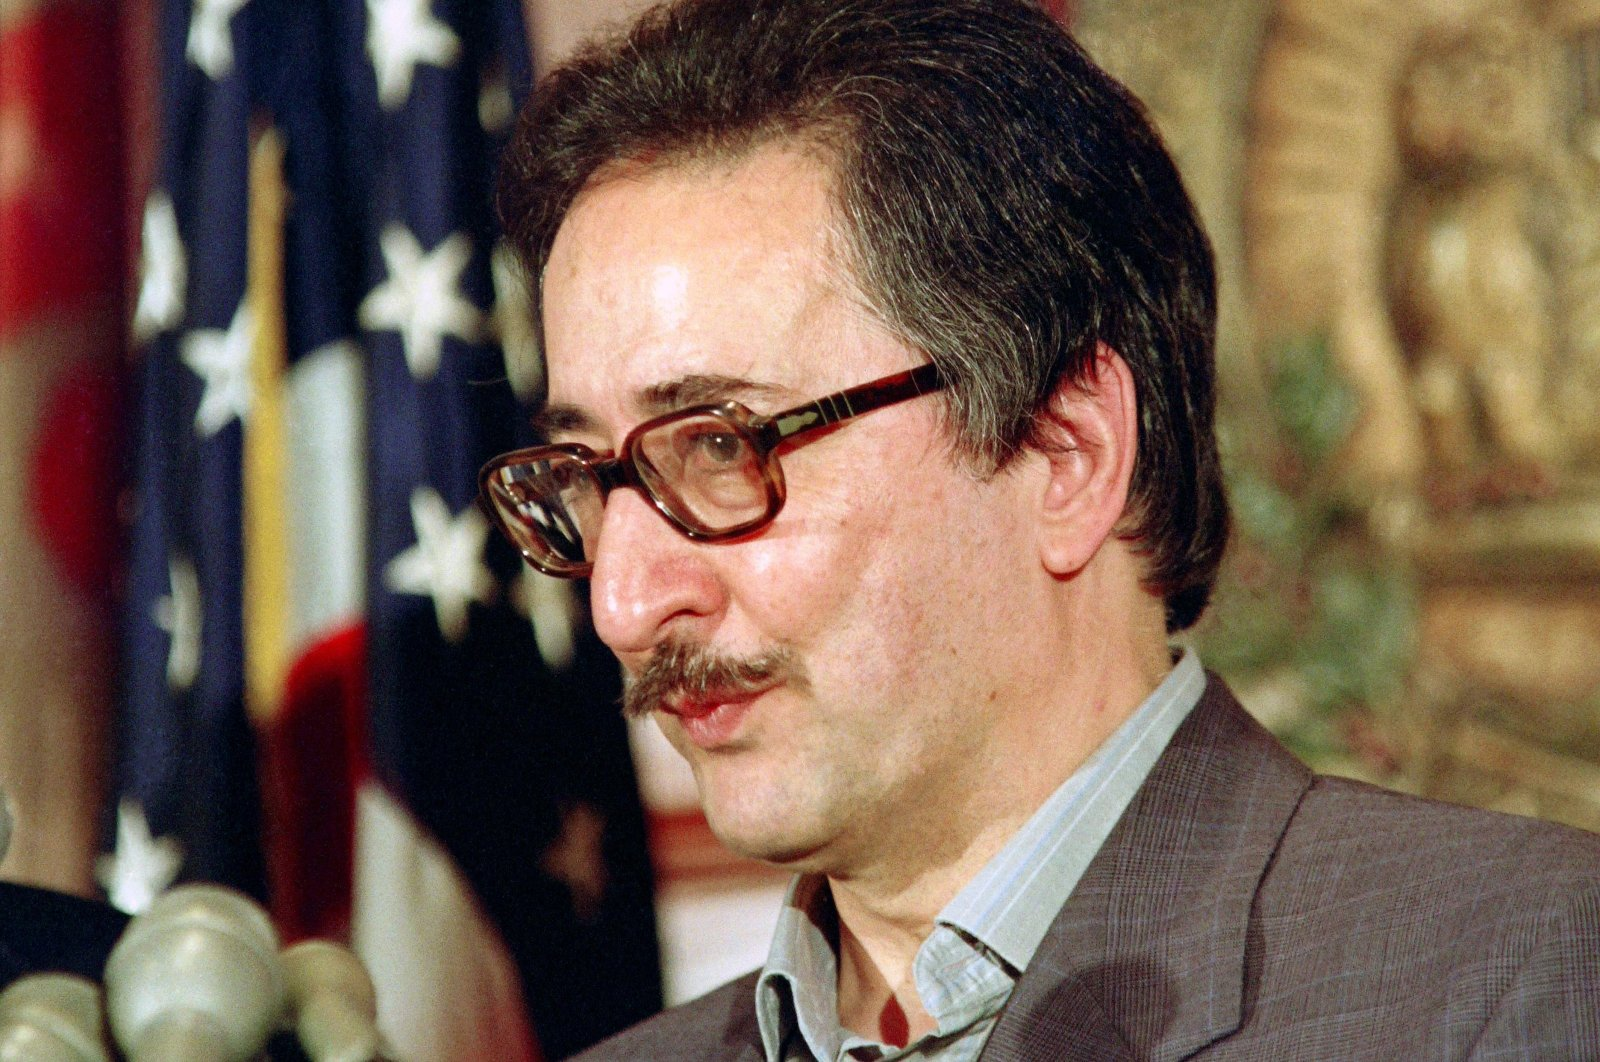 Former President of Iran Abolhassan Banisadr speaks at the National Press Club in Washington, D.C., May 7, 1991. (AFP Photo)